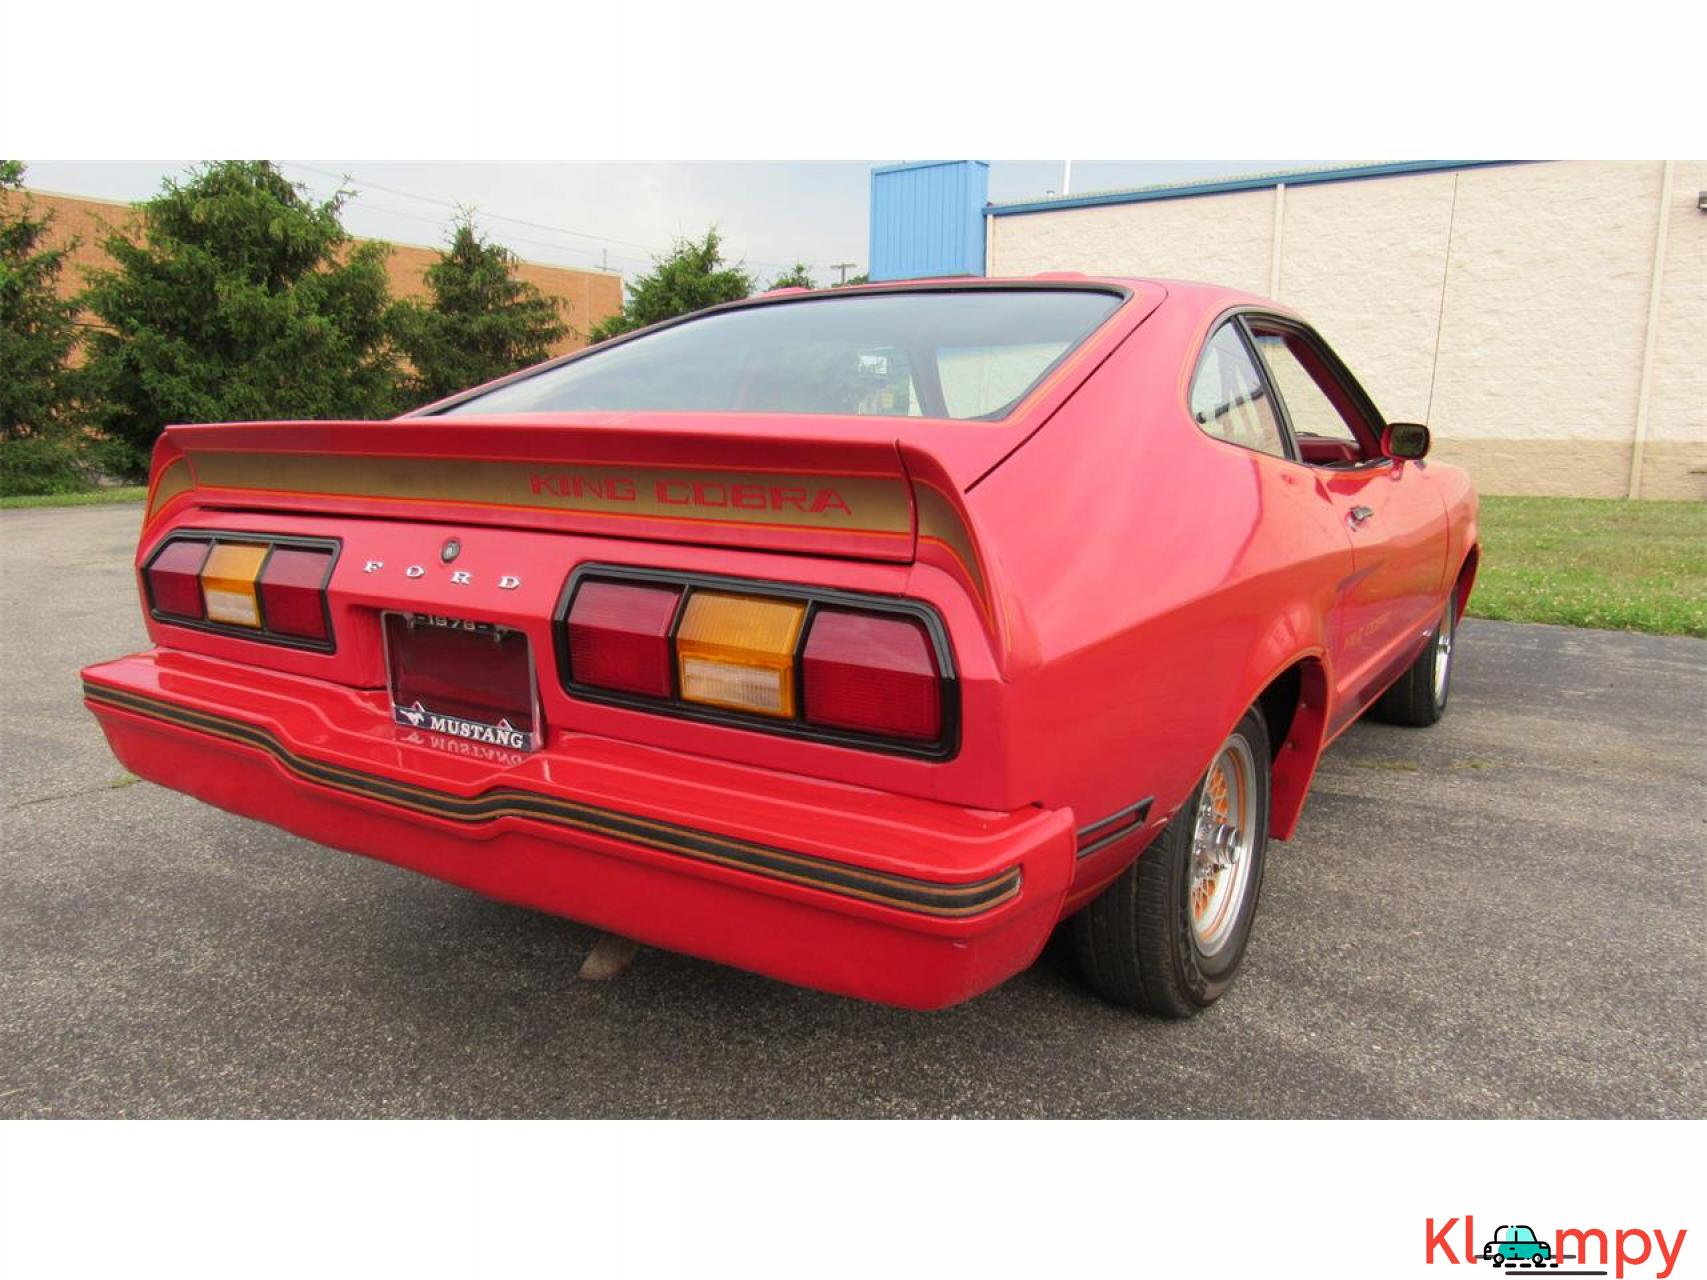 1978 Ford Mustang 302ci V8 Red - 4/17